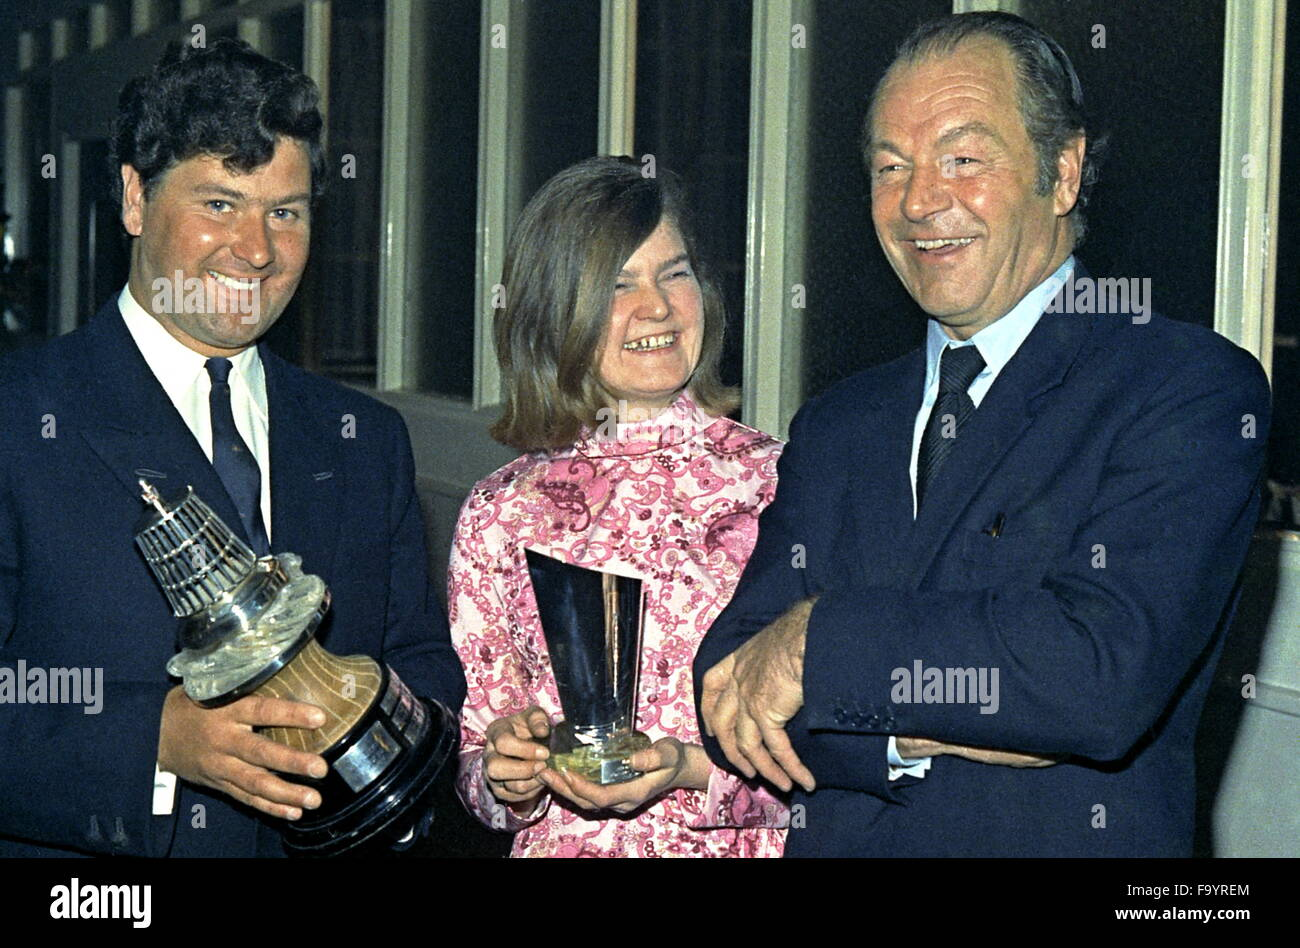 AJAXNETPHOTO. 4TH JANUARY, 1972. LONDON, ENGLAND. - YACHTSPERSONS OF THE YEAR. - (L-R) WRONG-WAY-ROUND SAILOR CHAY Stock Photo